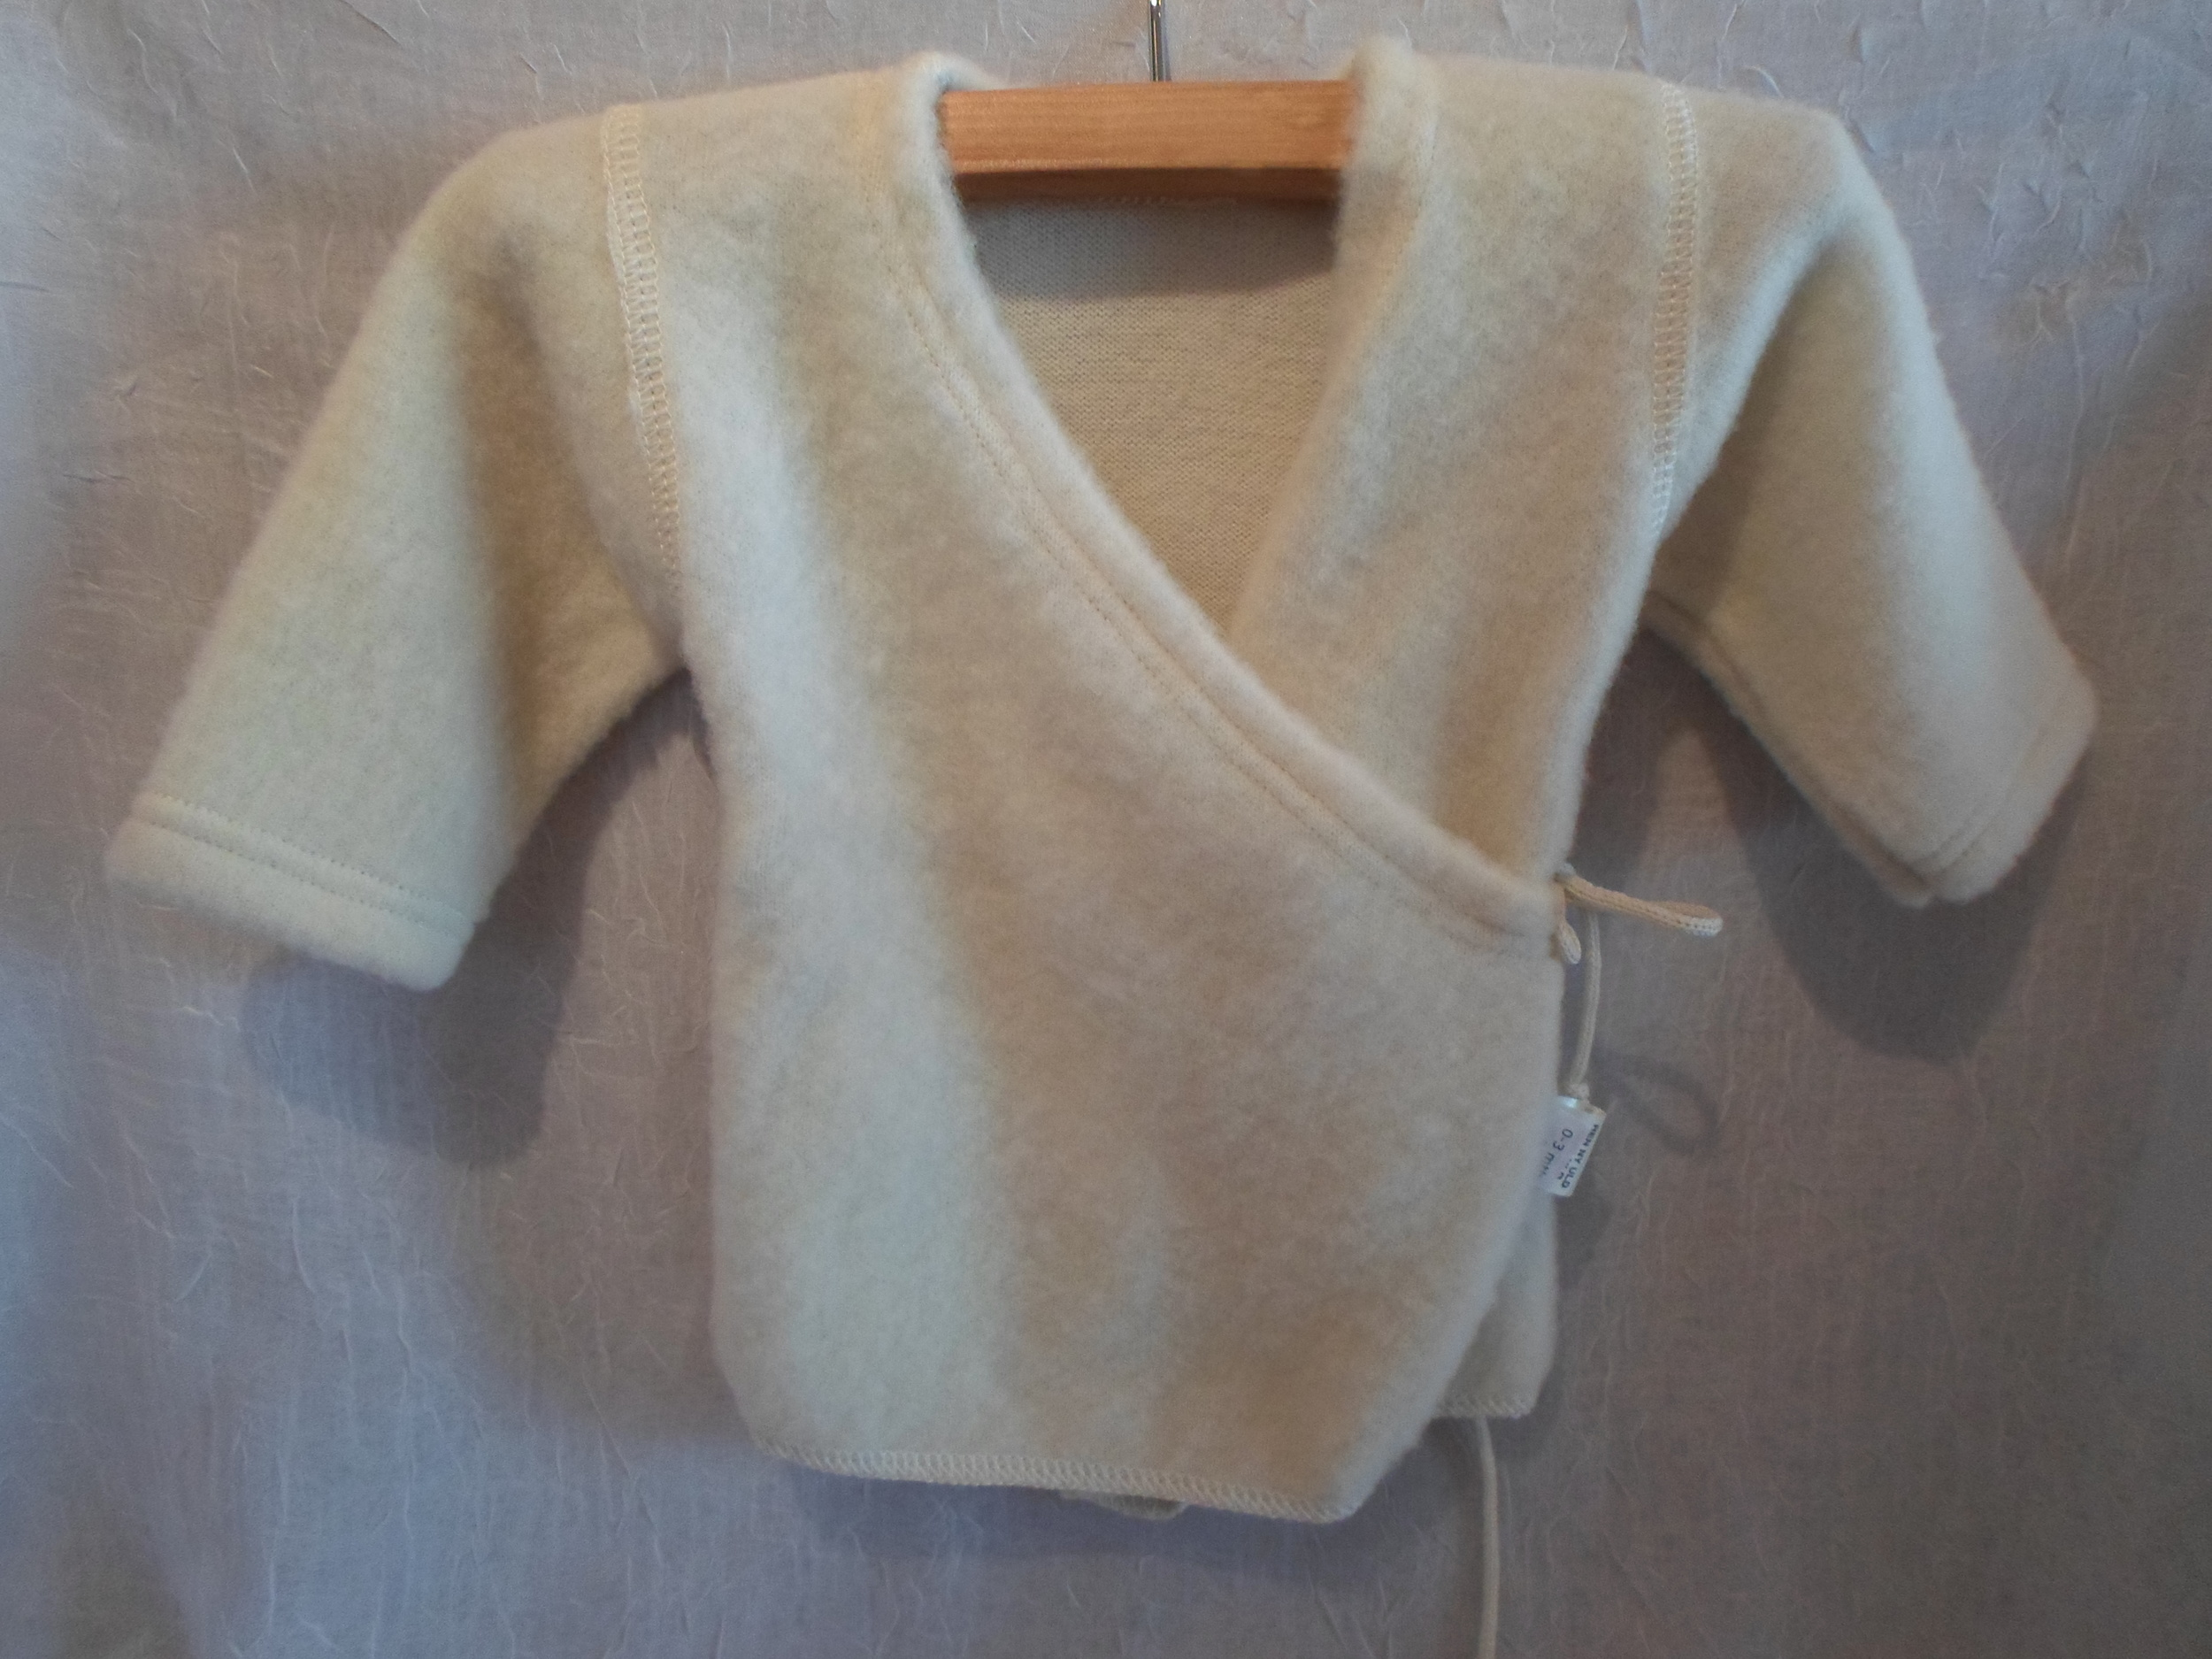 LanaCare Wool Sweater size 0-3m  $56.50  SPECIAL ORDER  Wants 1